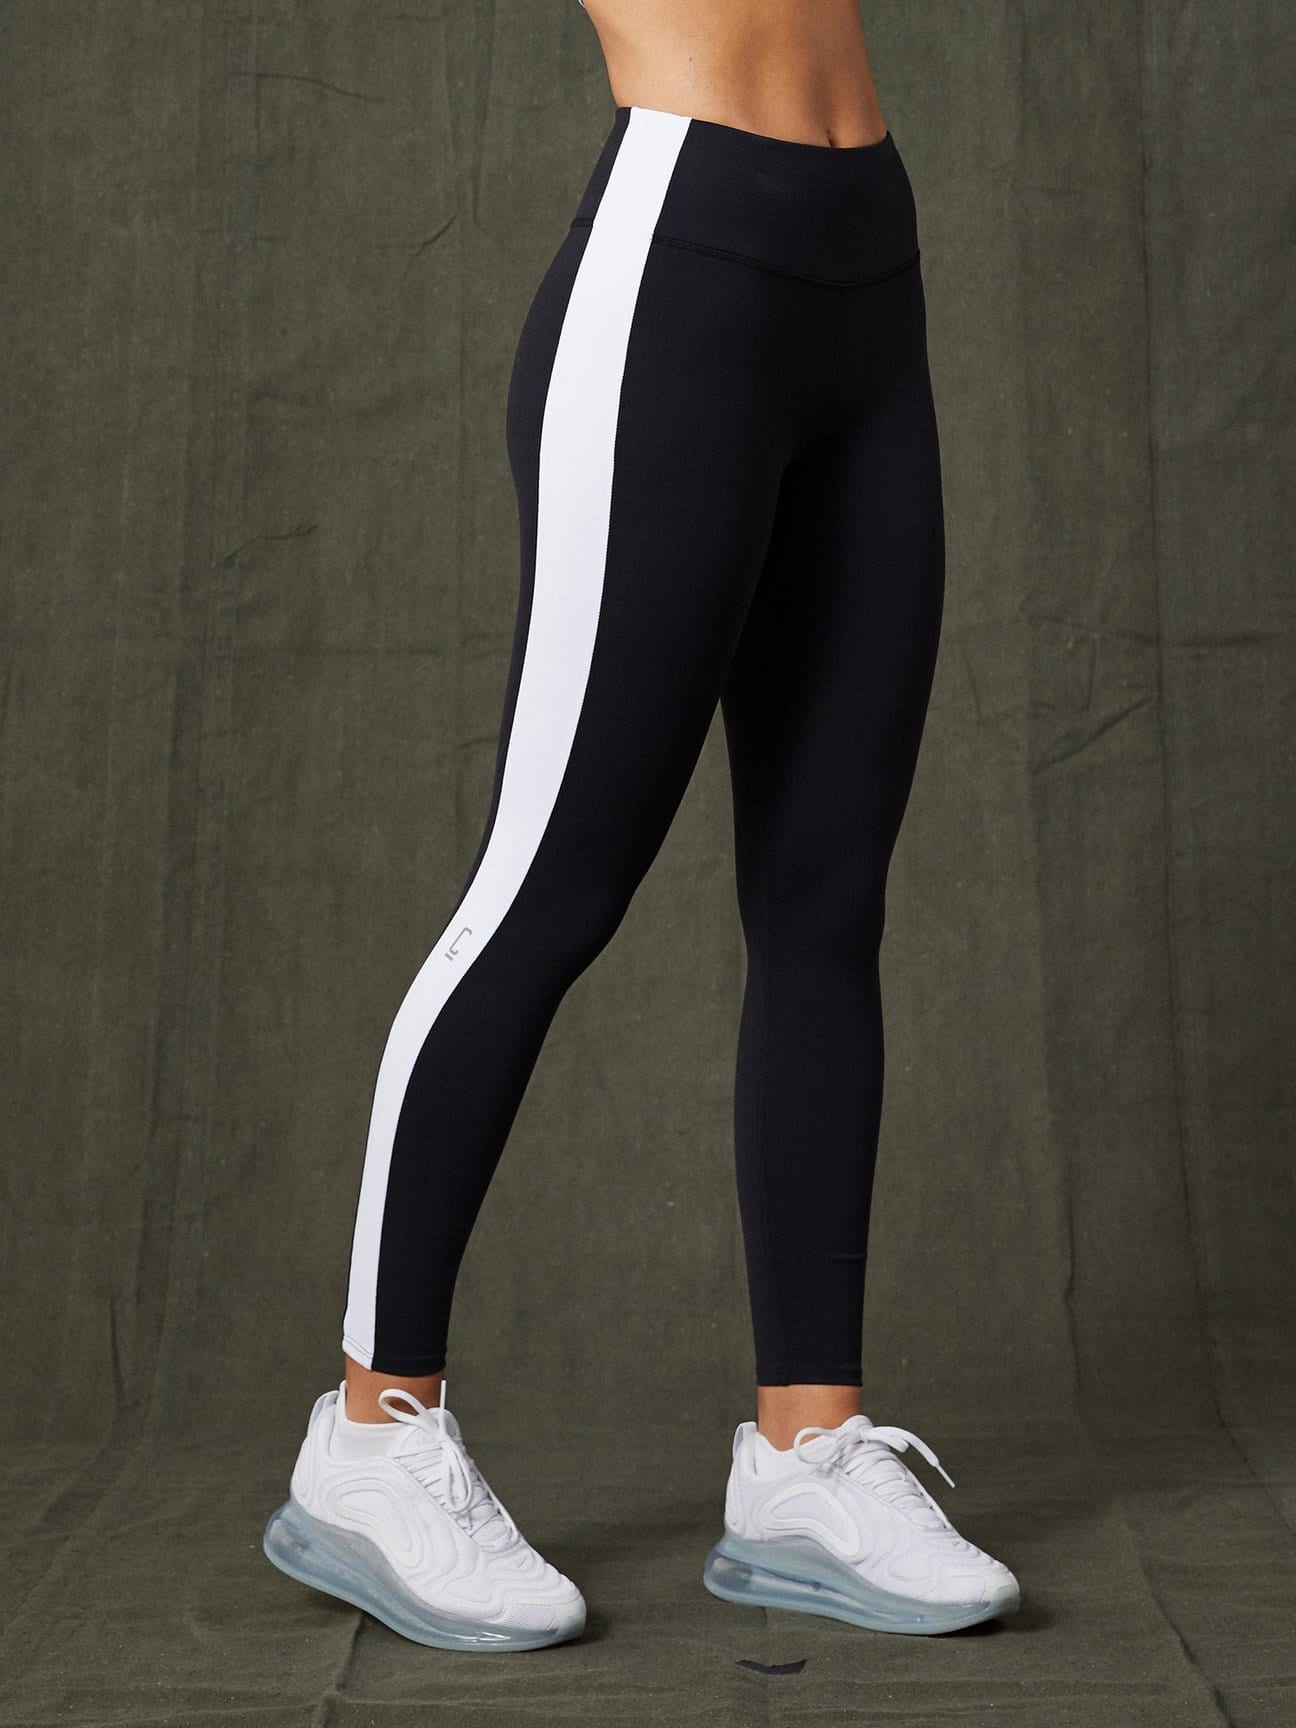 Victory Legging / Neighborhood Goods